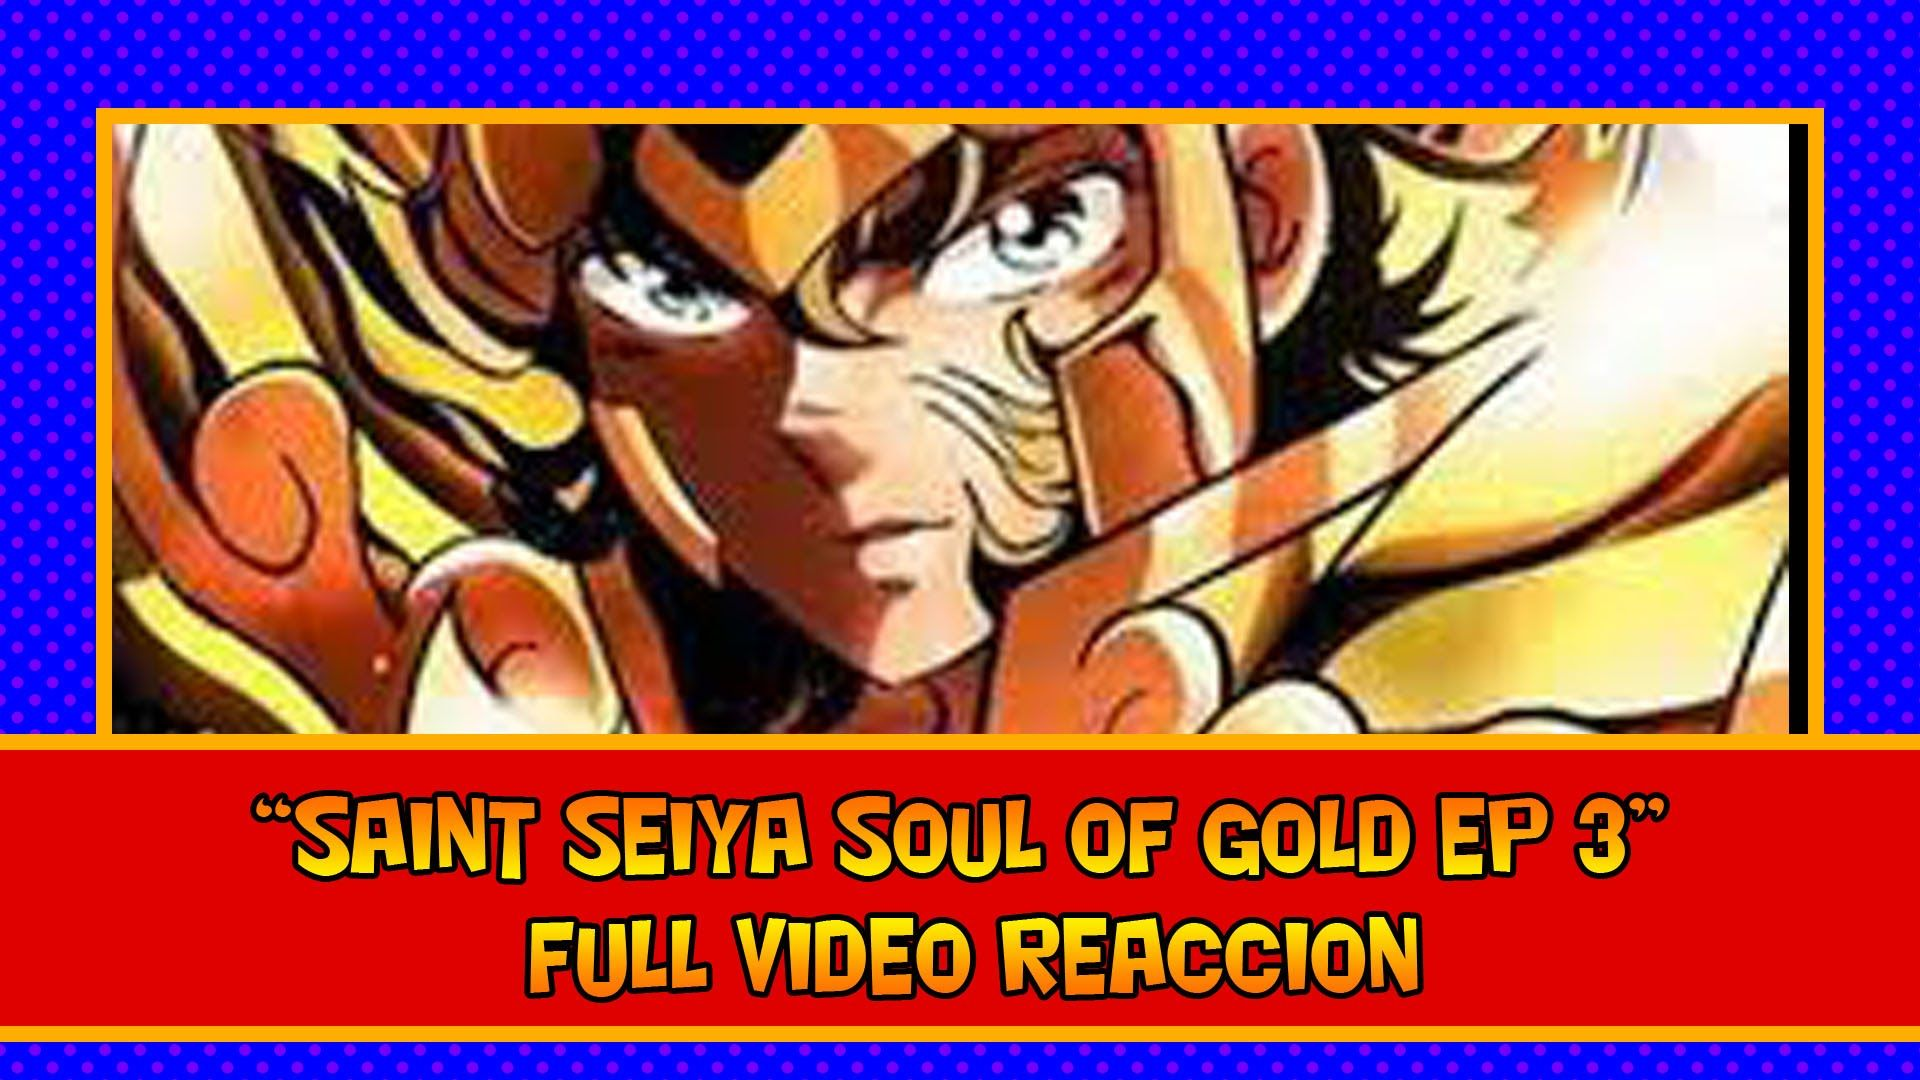 SAINT SEIYA SOUL OF GOLD EP 3 FULL VIDEO REACCION